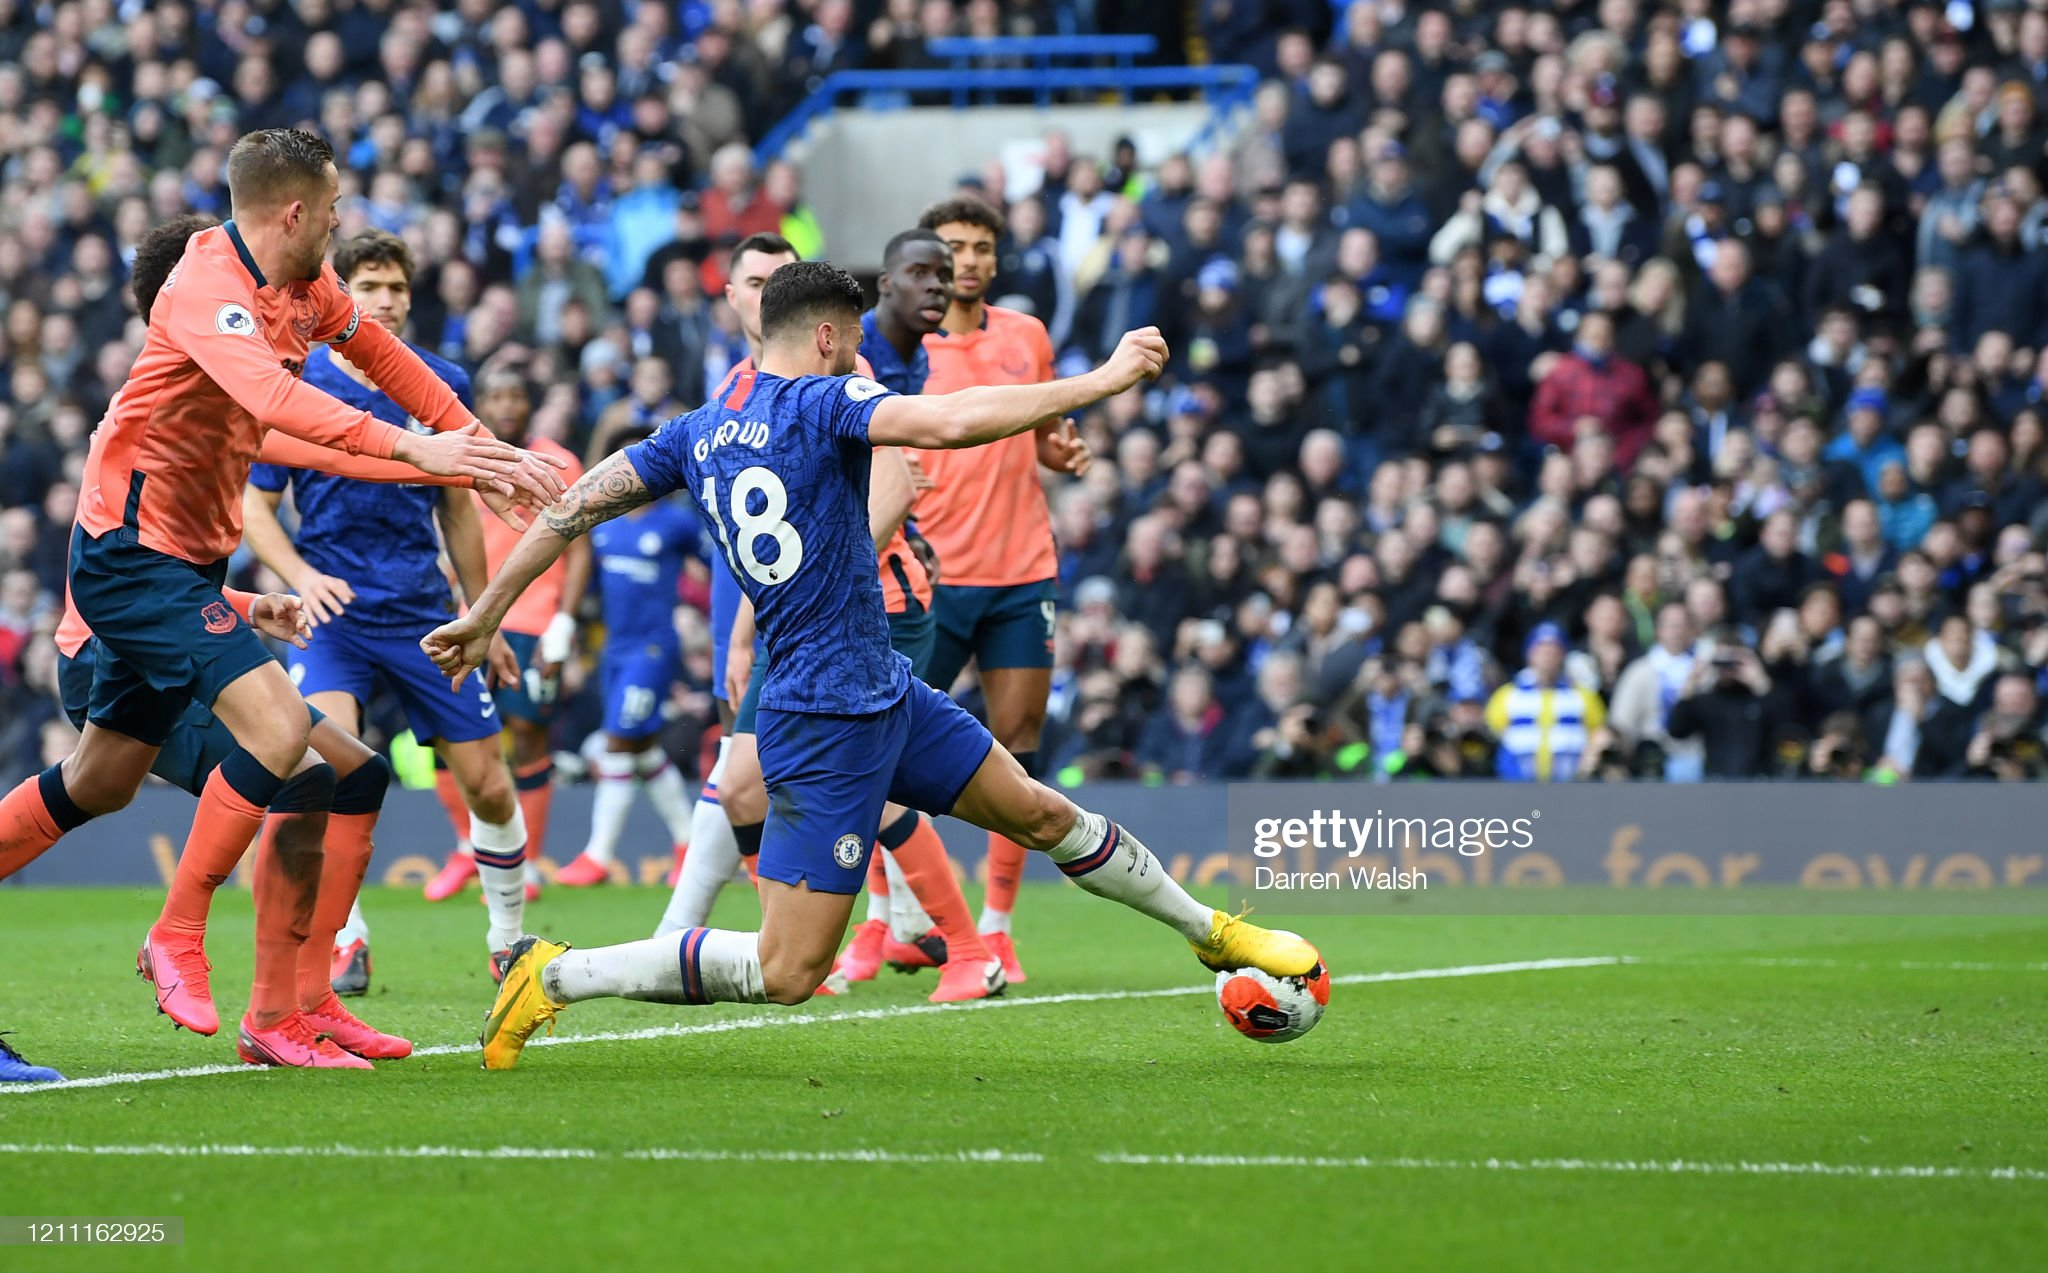 Chelsea FC v Everton FC - Premier League : News Photo